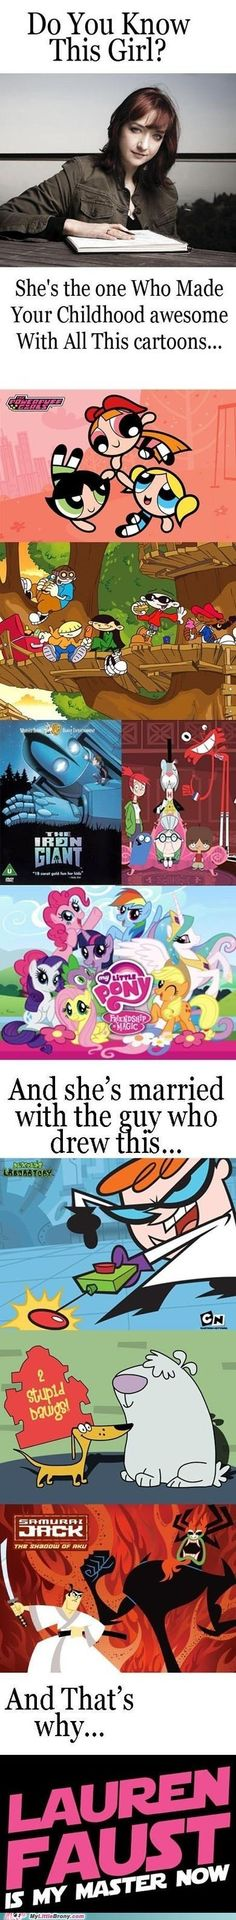 Our Lauren, who art in Los Angeles, pony be thy name. Thy bronies come, thy animation be done, as on Cartoon Network as it is on The Hub.